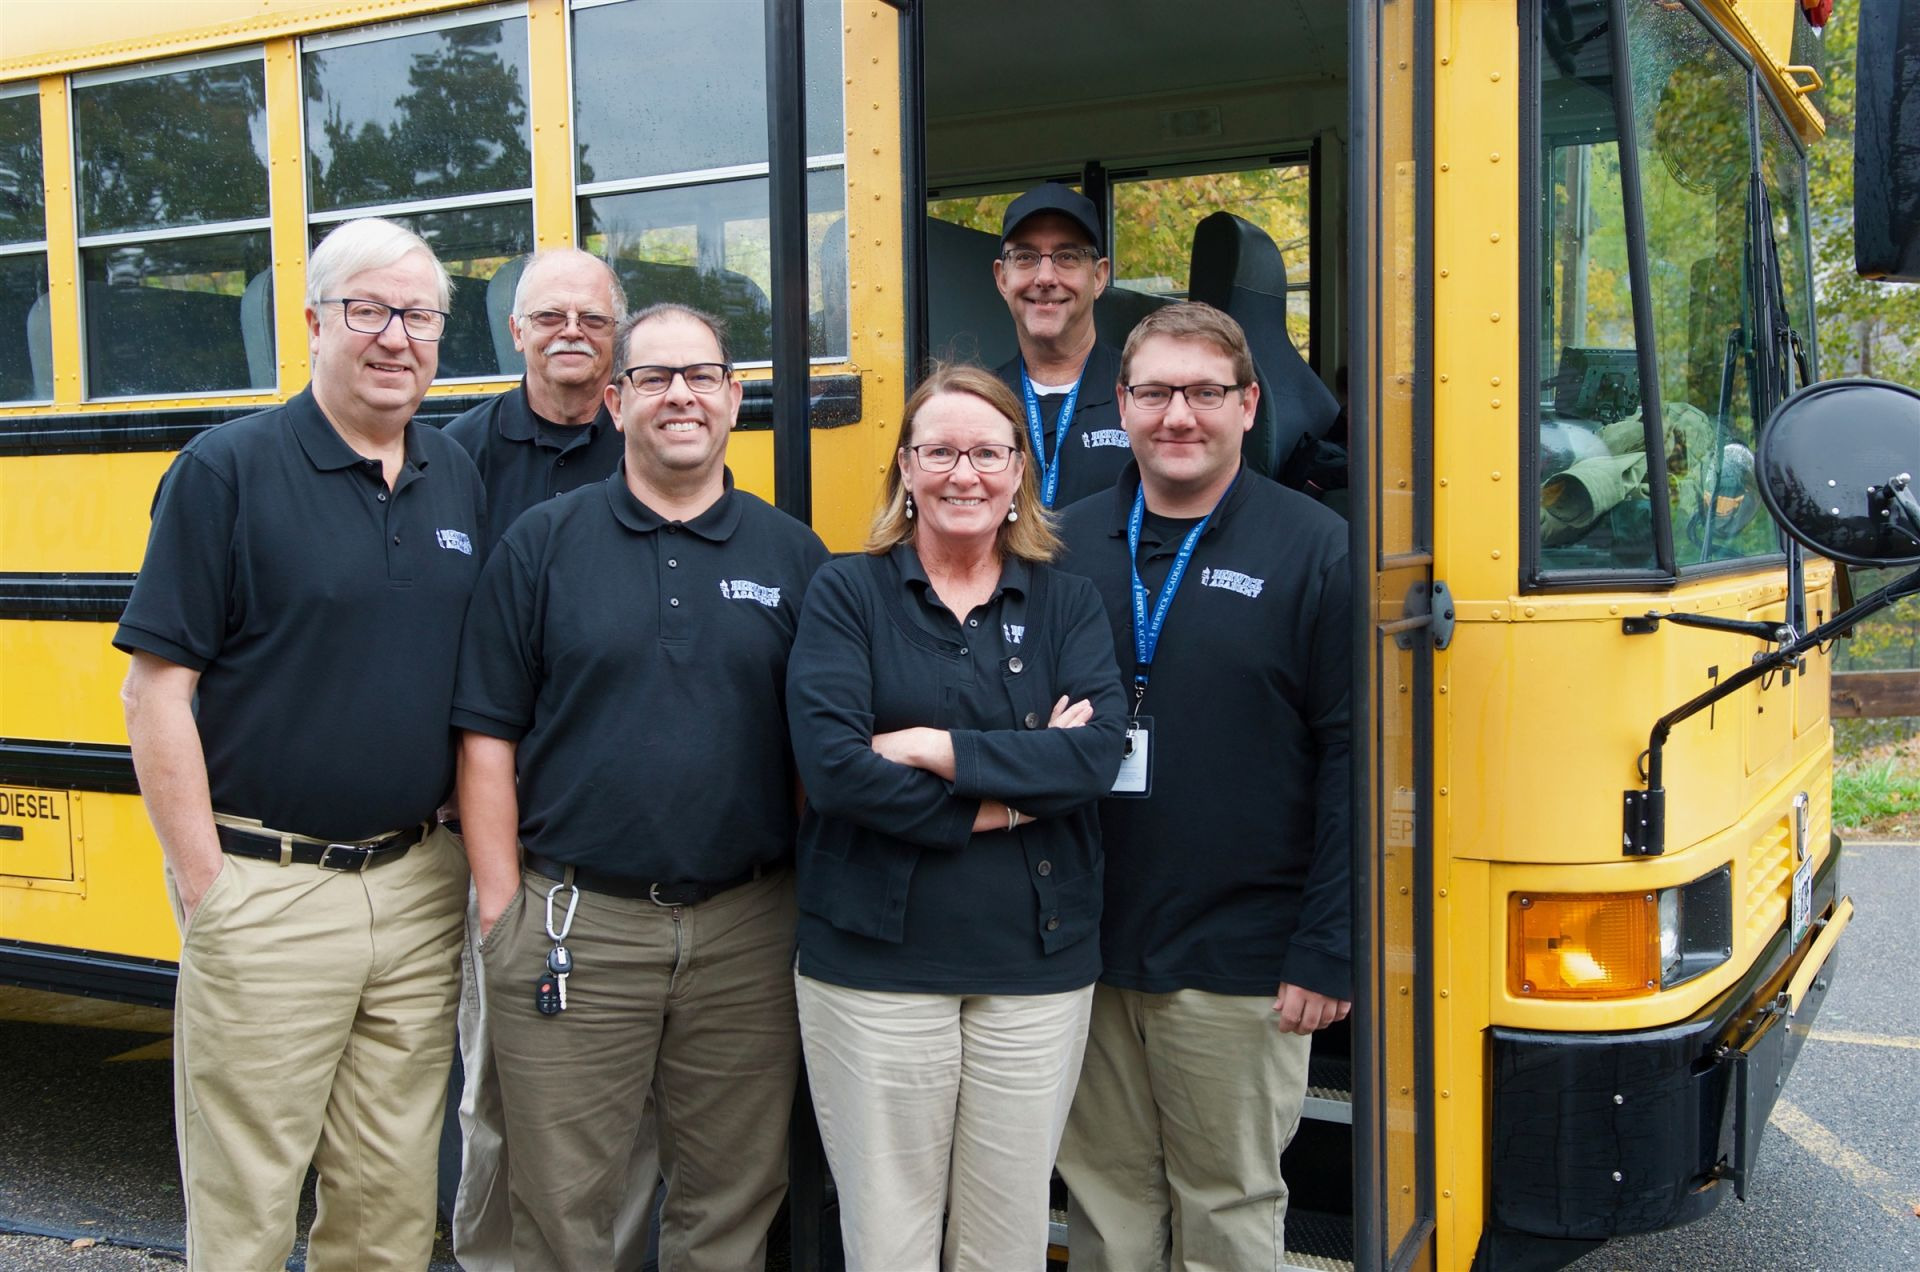 Berwick owns a fleet of buses and employs six experienced drivers. Our team is up early, inspecting buses and leaving campus daily at 6 a.m. to travel routes in Maine, New Hampshire, and Massachusetts. We believe that a students' day begins when they step onto our buses, and our drivers ensure that all students feel welcome and safe. We are so thankful for John, Ed, Abdeltif, Colleen, Ed, Les, and Cory, who all make daily connections with students while transporting them safely to and from campus.